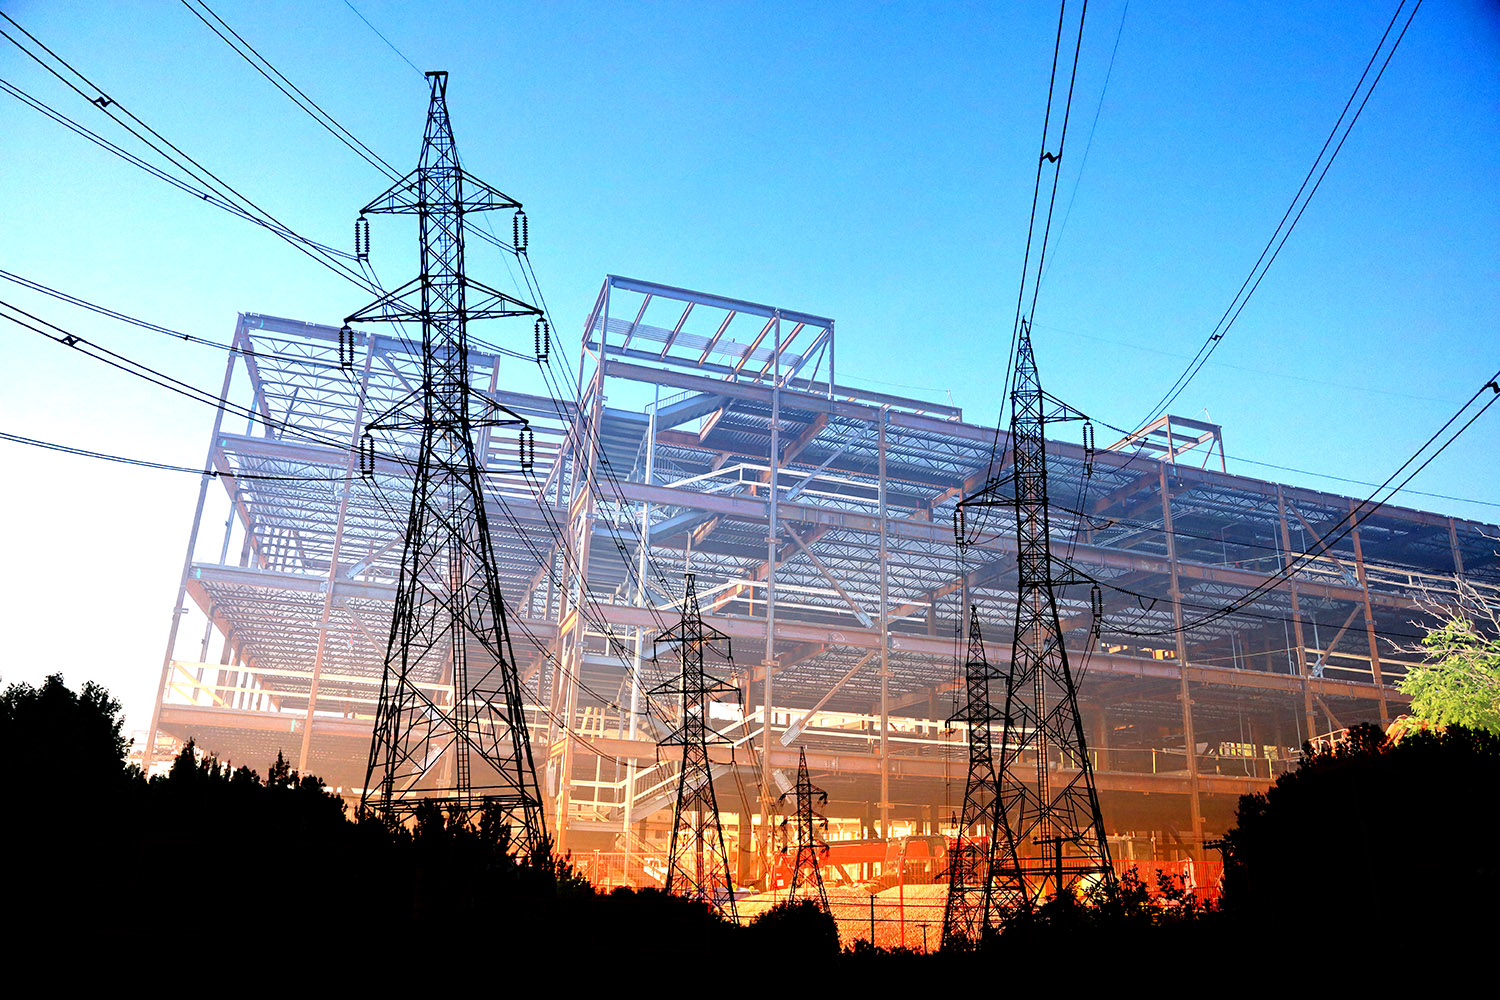 Modern Construction Industry Electrification - RF Stock Image